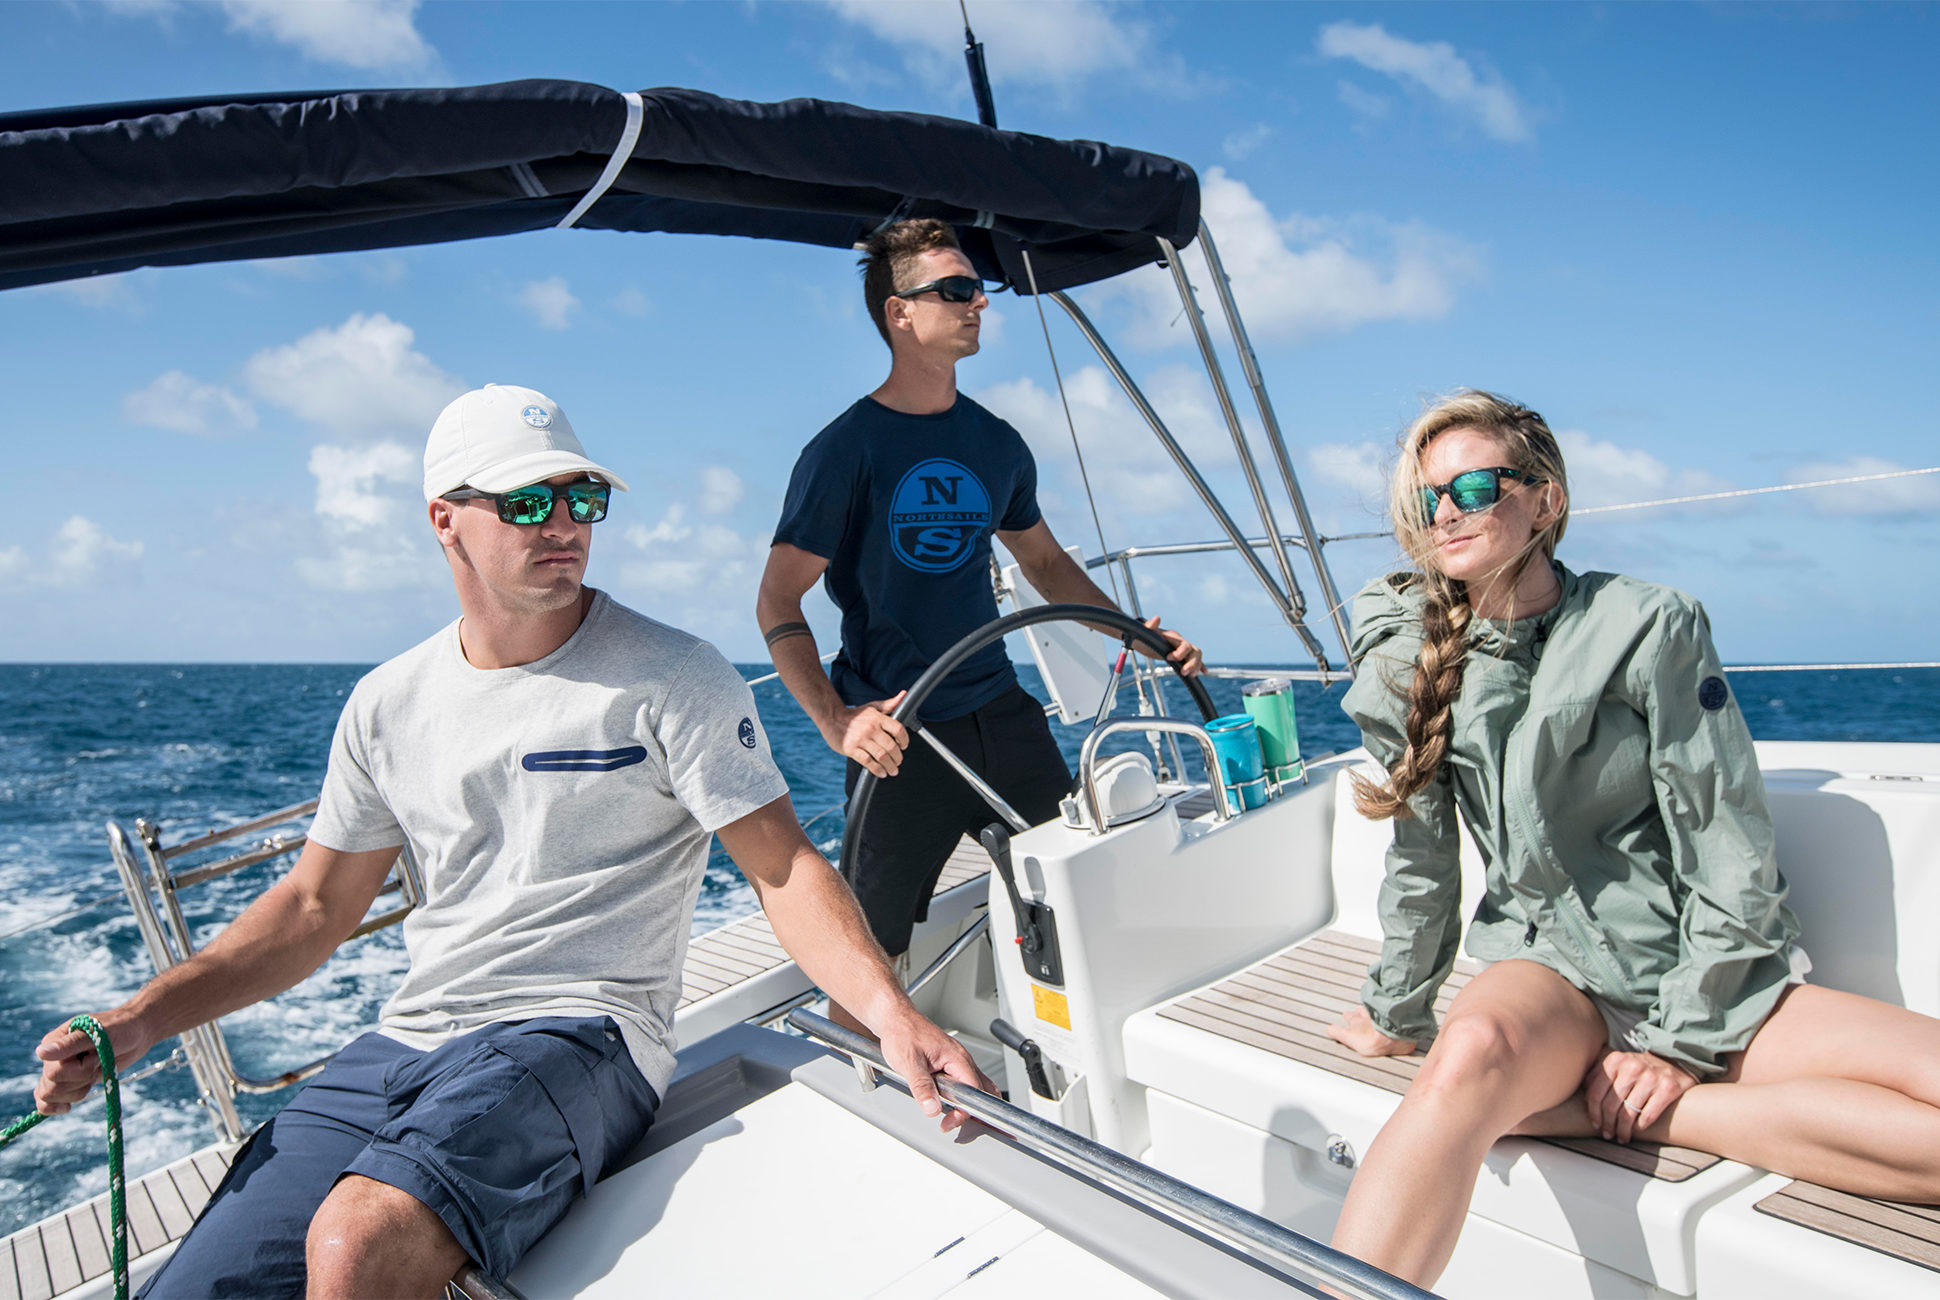 After Dominating the Ocean, a Leading Sailing Brand Enters the World of Sportswear - Take relentless dedication to innovation, add 60 years of experience, and you have a recipe for success.